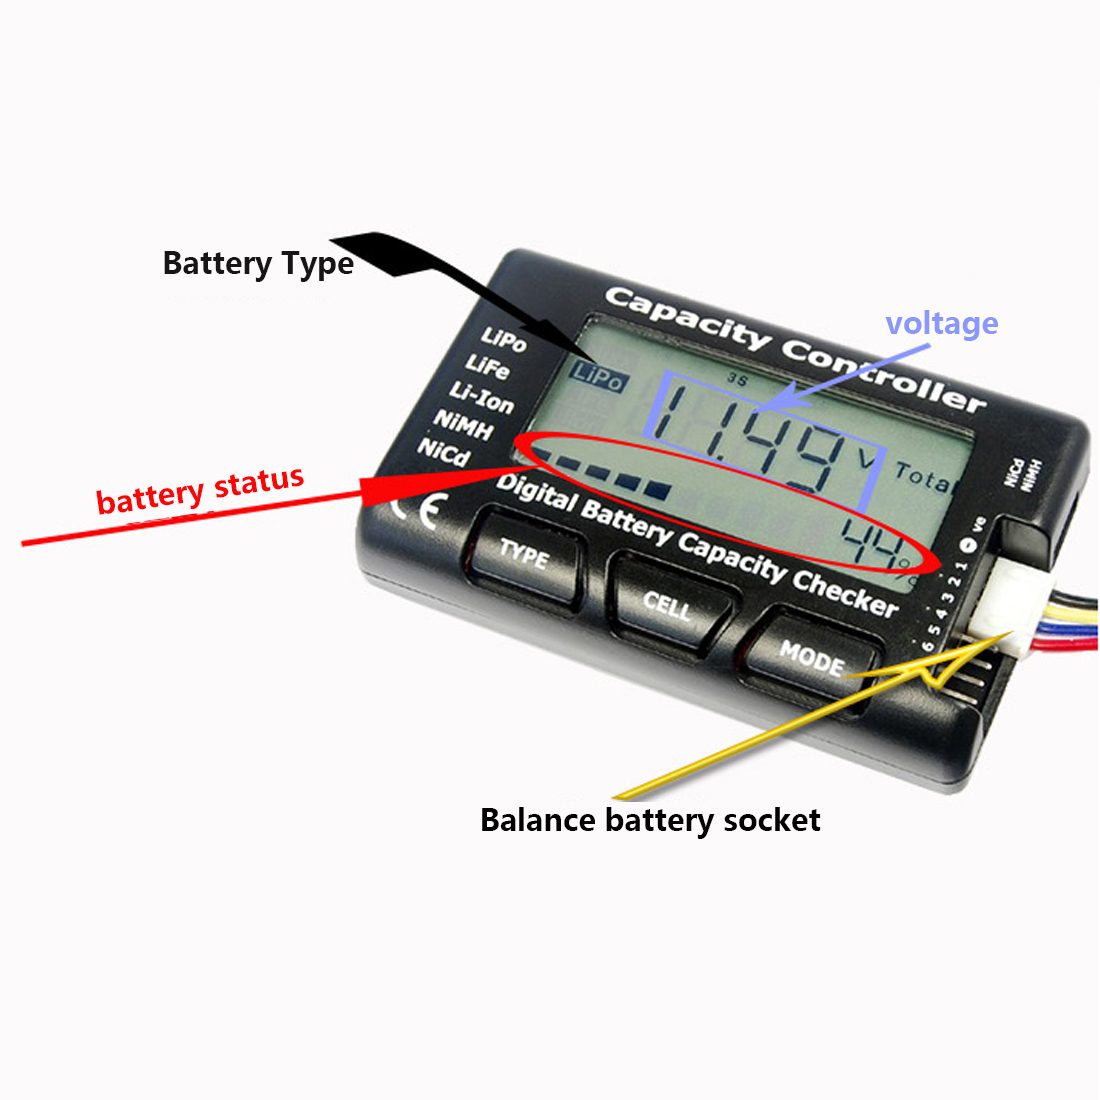 Good RC CellMeter-7 Digital Cell Battery Capacity Checker For LiPo LiFe Li-ion Nicd NiMH Battery Voltage Tester Checking konica minolta konica minolta bizhub 4020